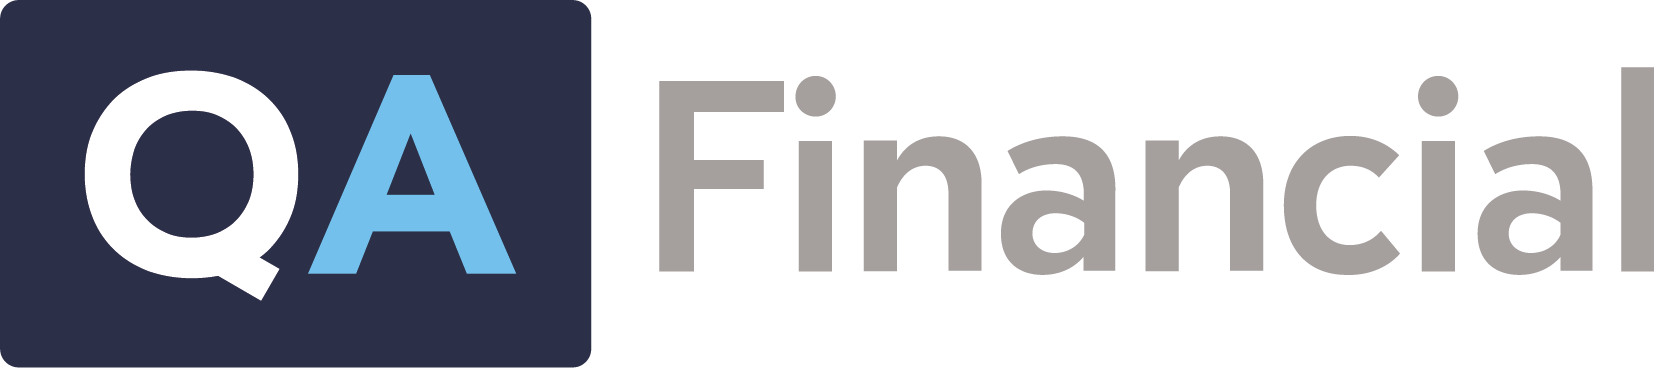 logo-qa-financial